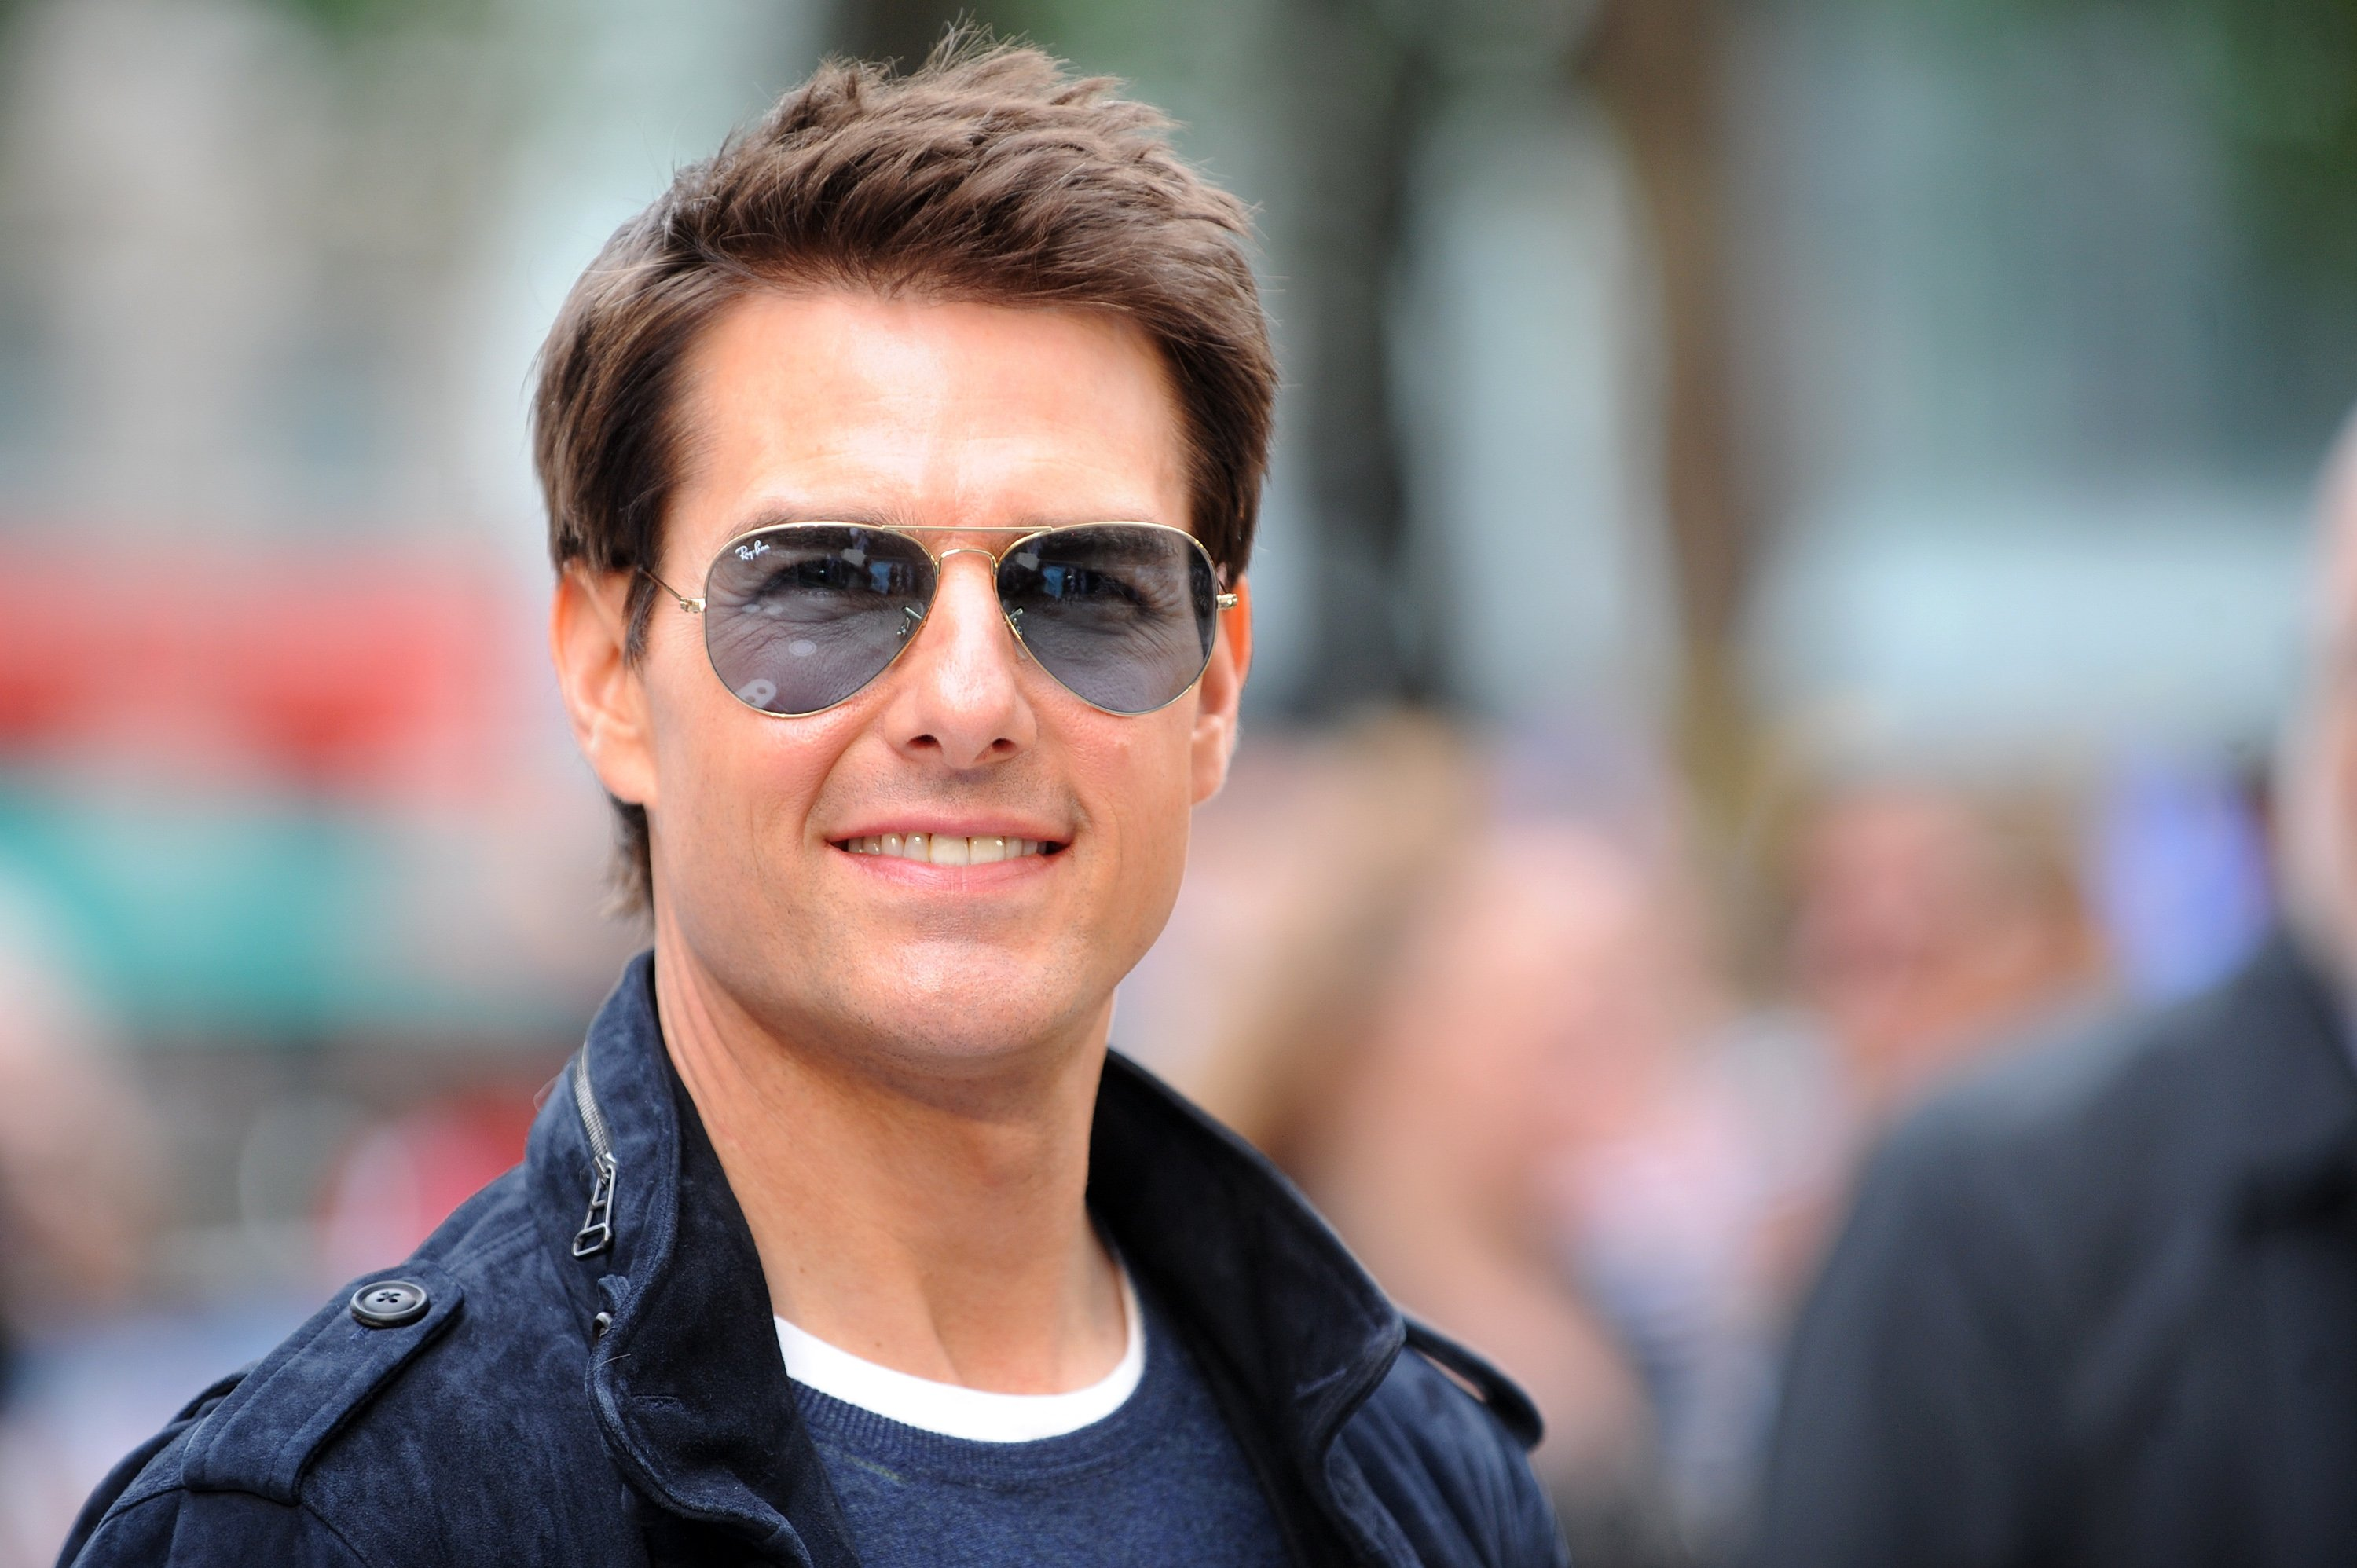 """Tom Cruise attends the European premiere of """"Rock Of Ages"""" at Odeon Leicester Square on June 10, 2012, in London, England. 